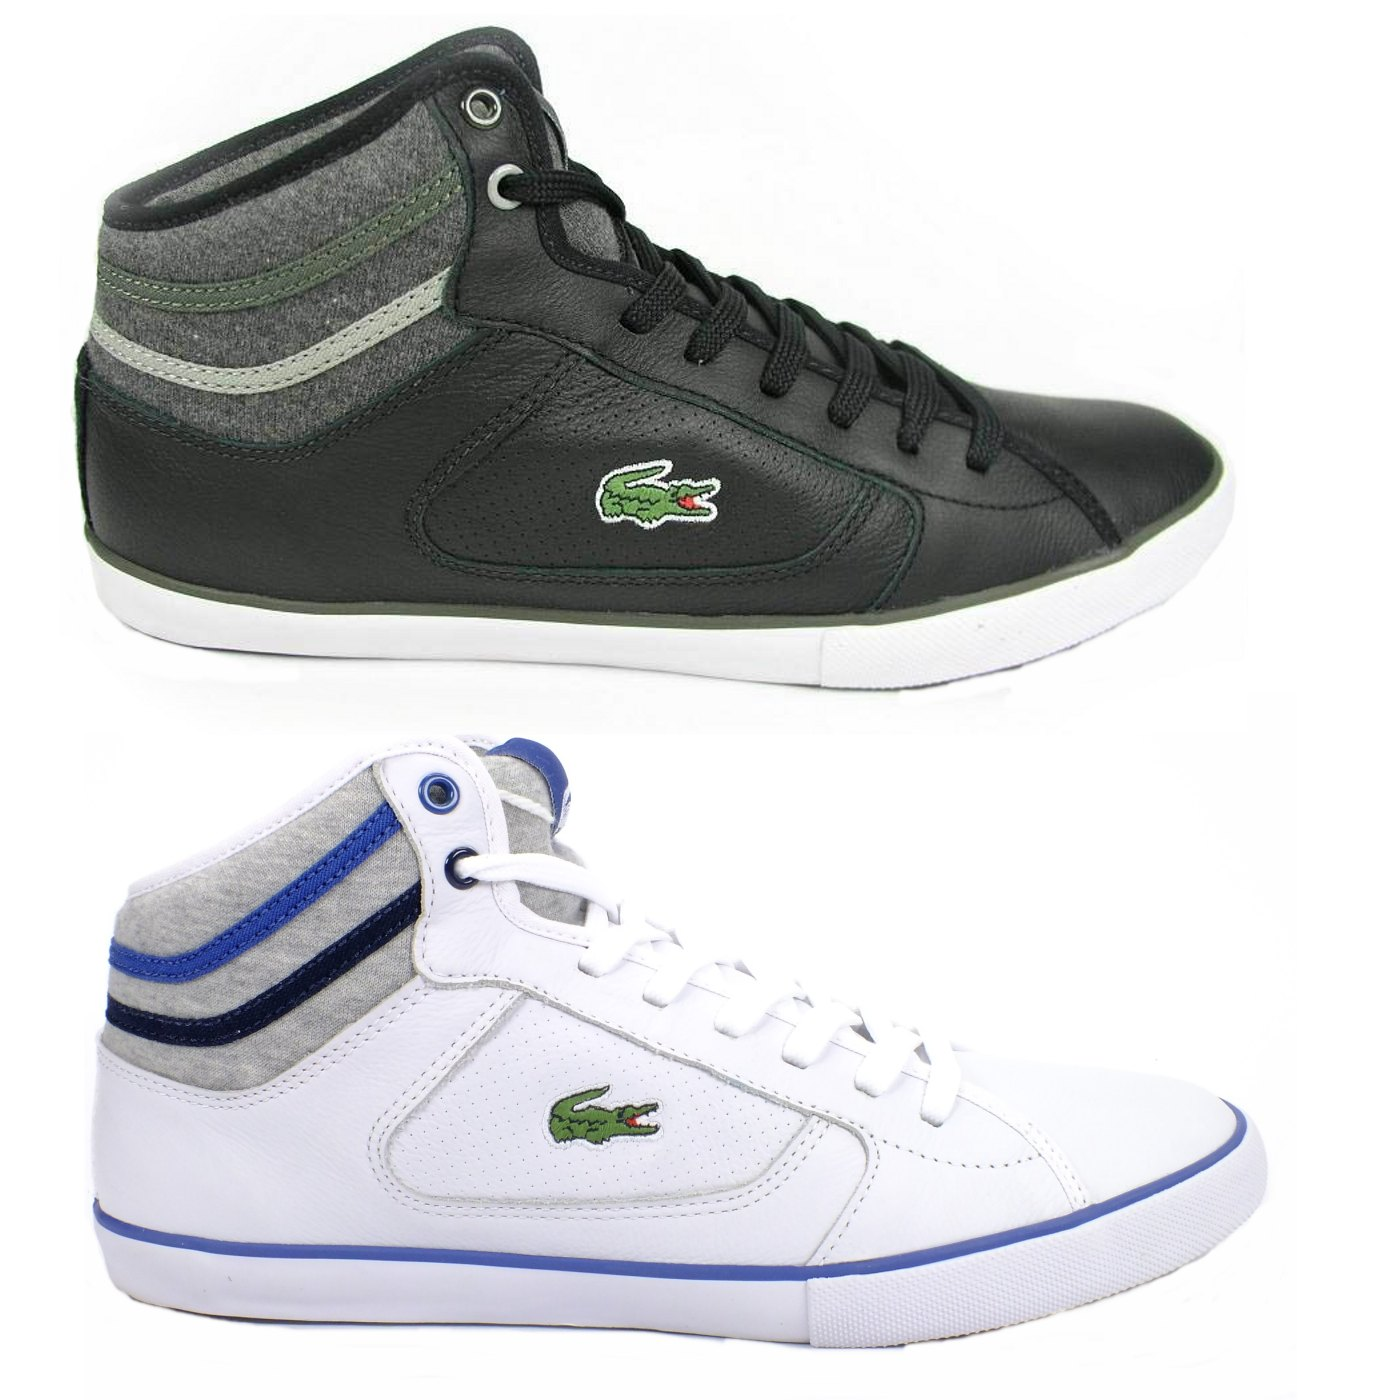 lacoste camous cor spm schuhe sneaker herren leder wei schwarz. Black Bedroom Furniture Sets. Home Design Ideas